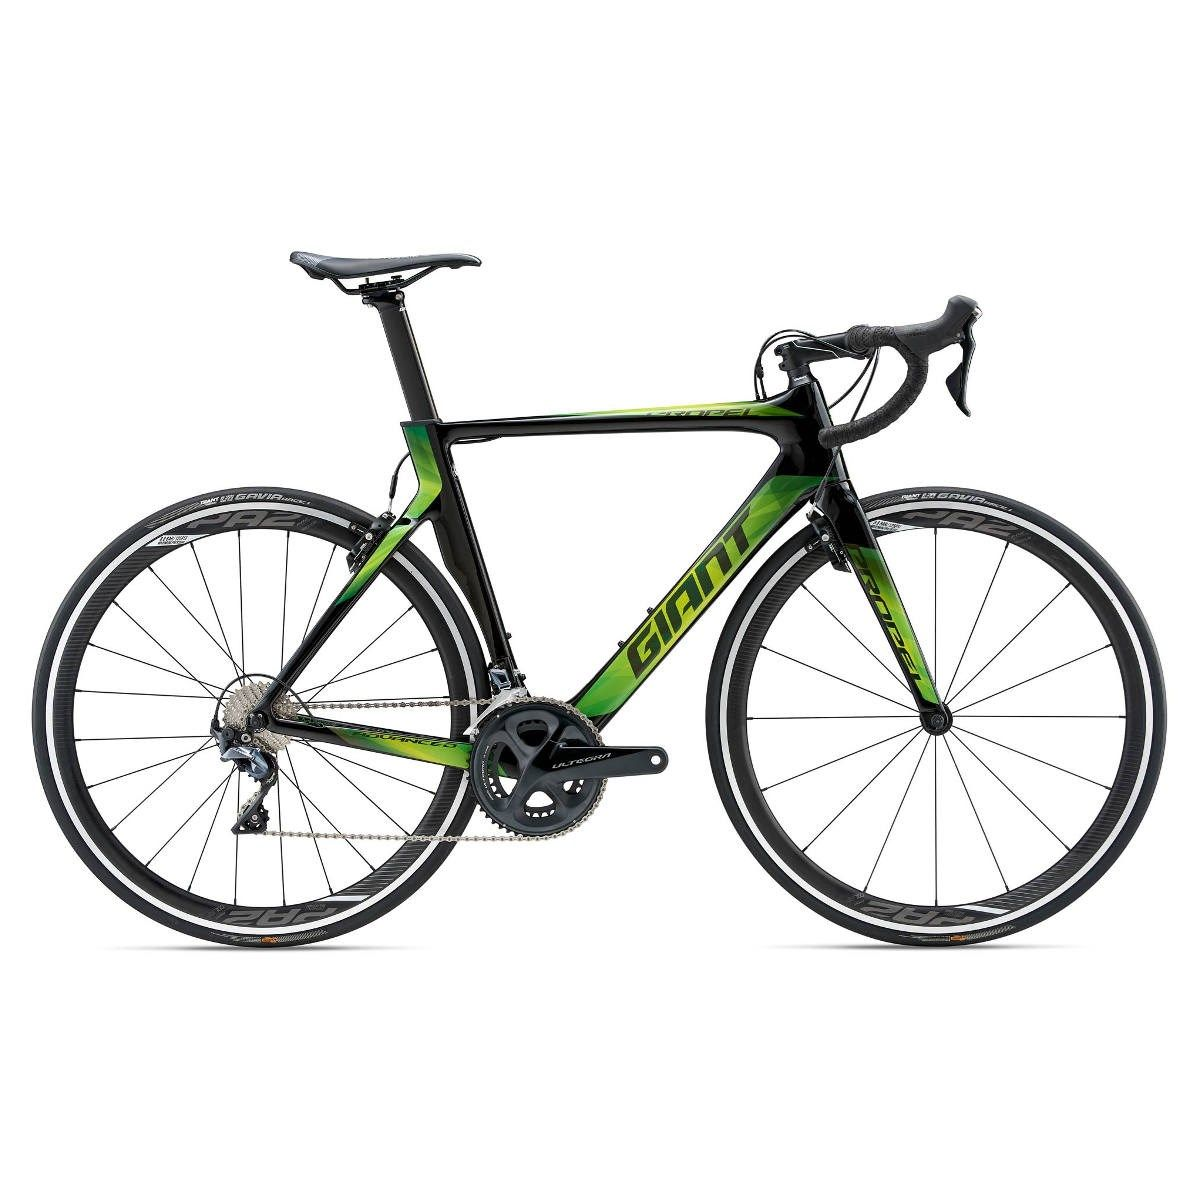 Giant Propel Advanced 1 2018 Carbon Road Bike Green With Images